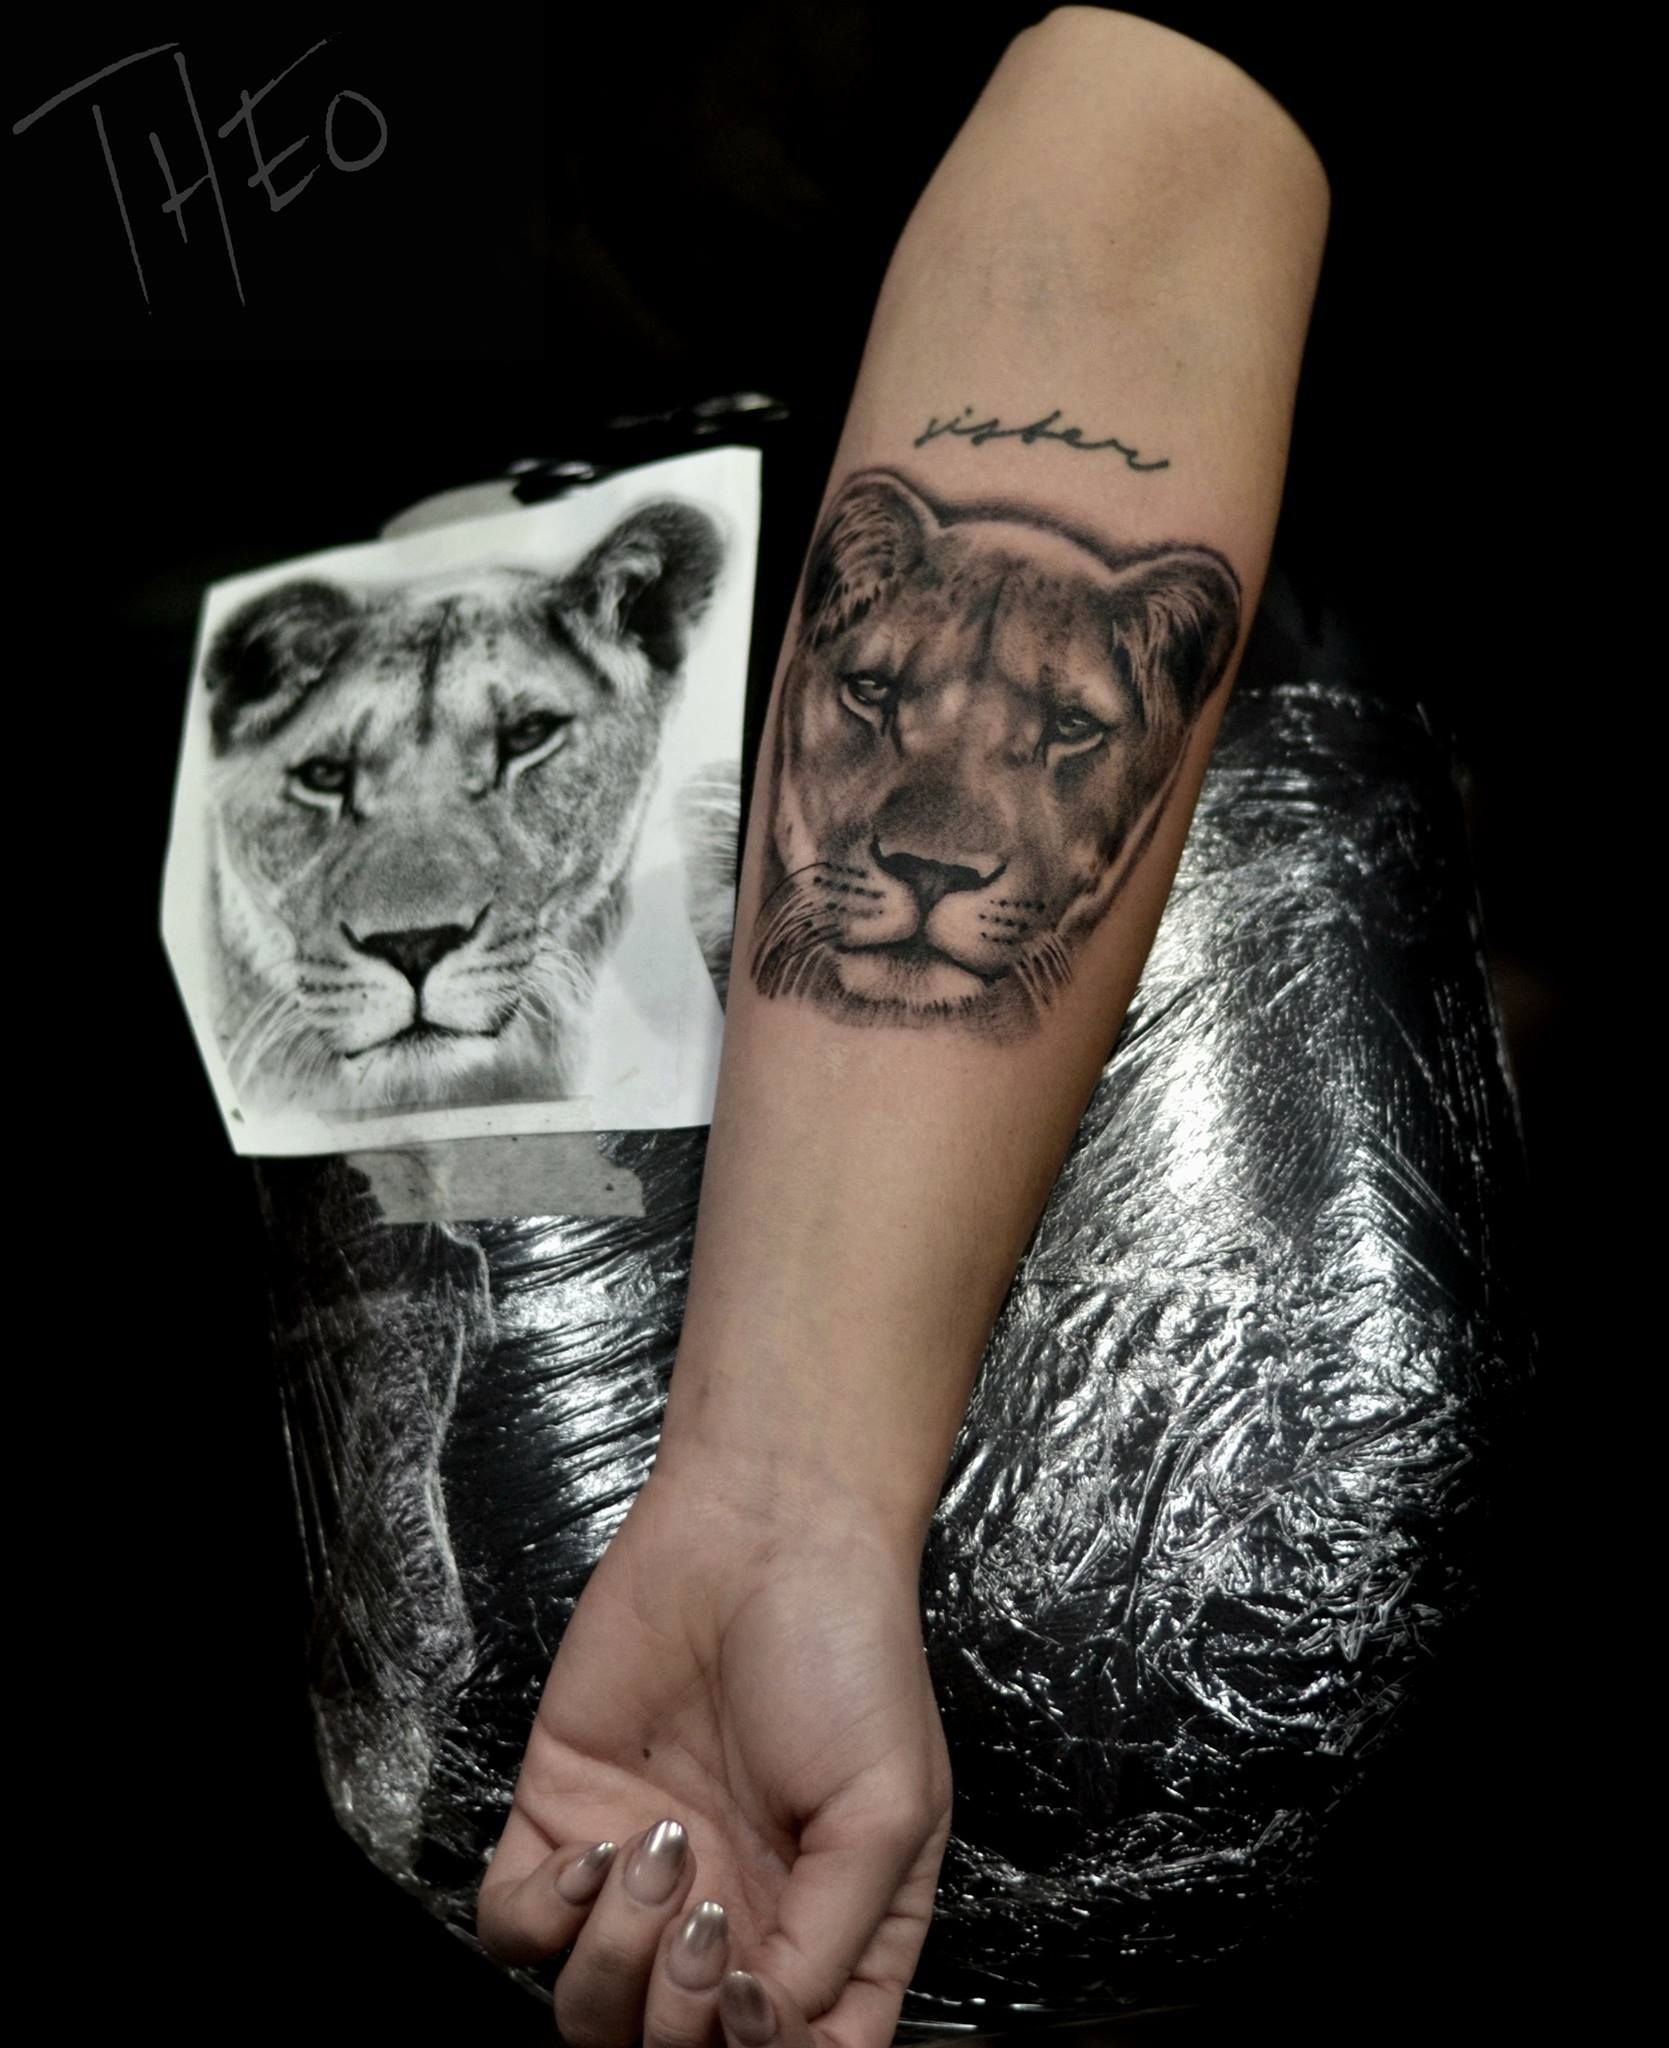 Lioness Tattoos: Lioness Tattoo By Theo. Limited Availability At Redemption